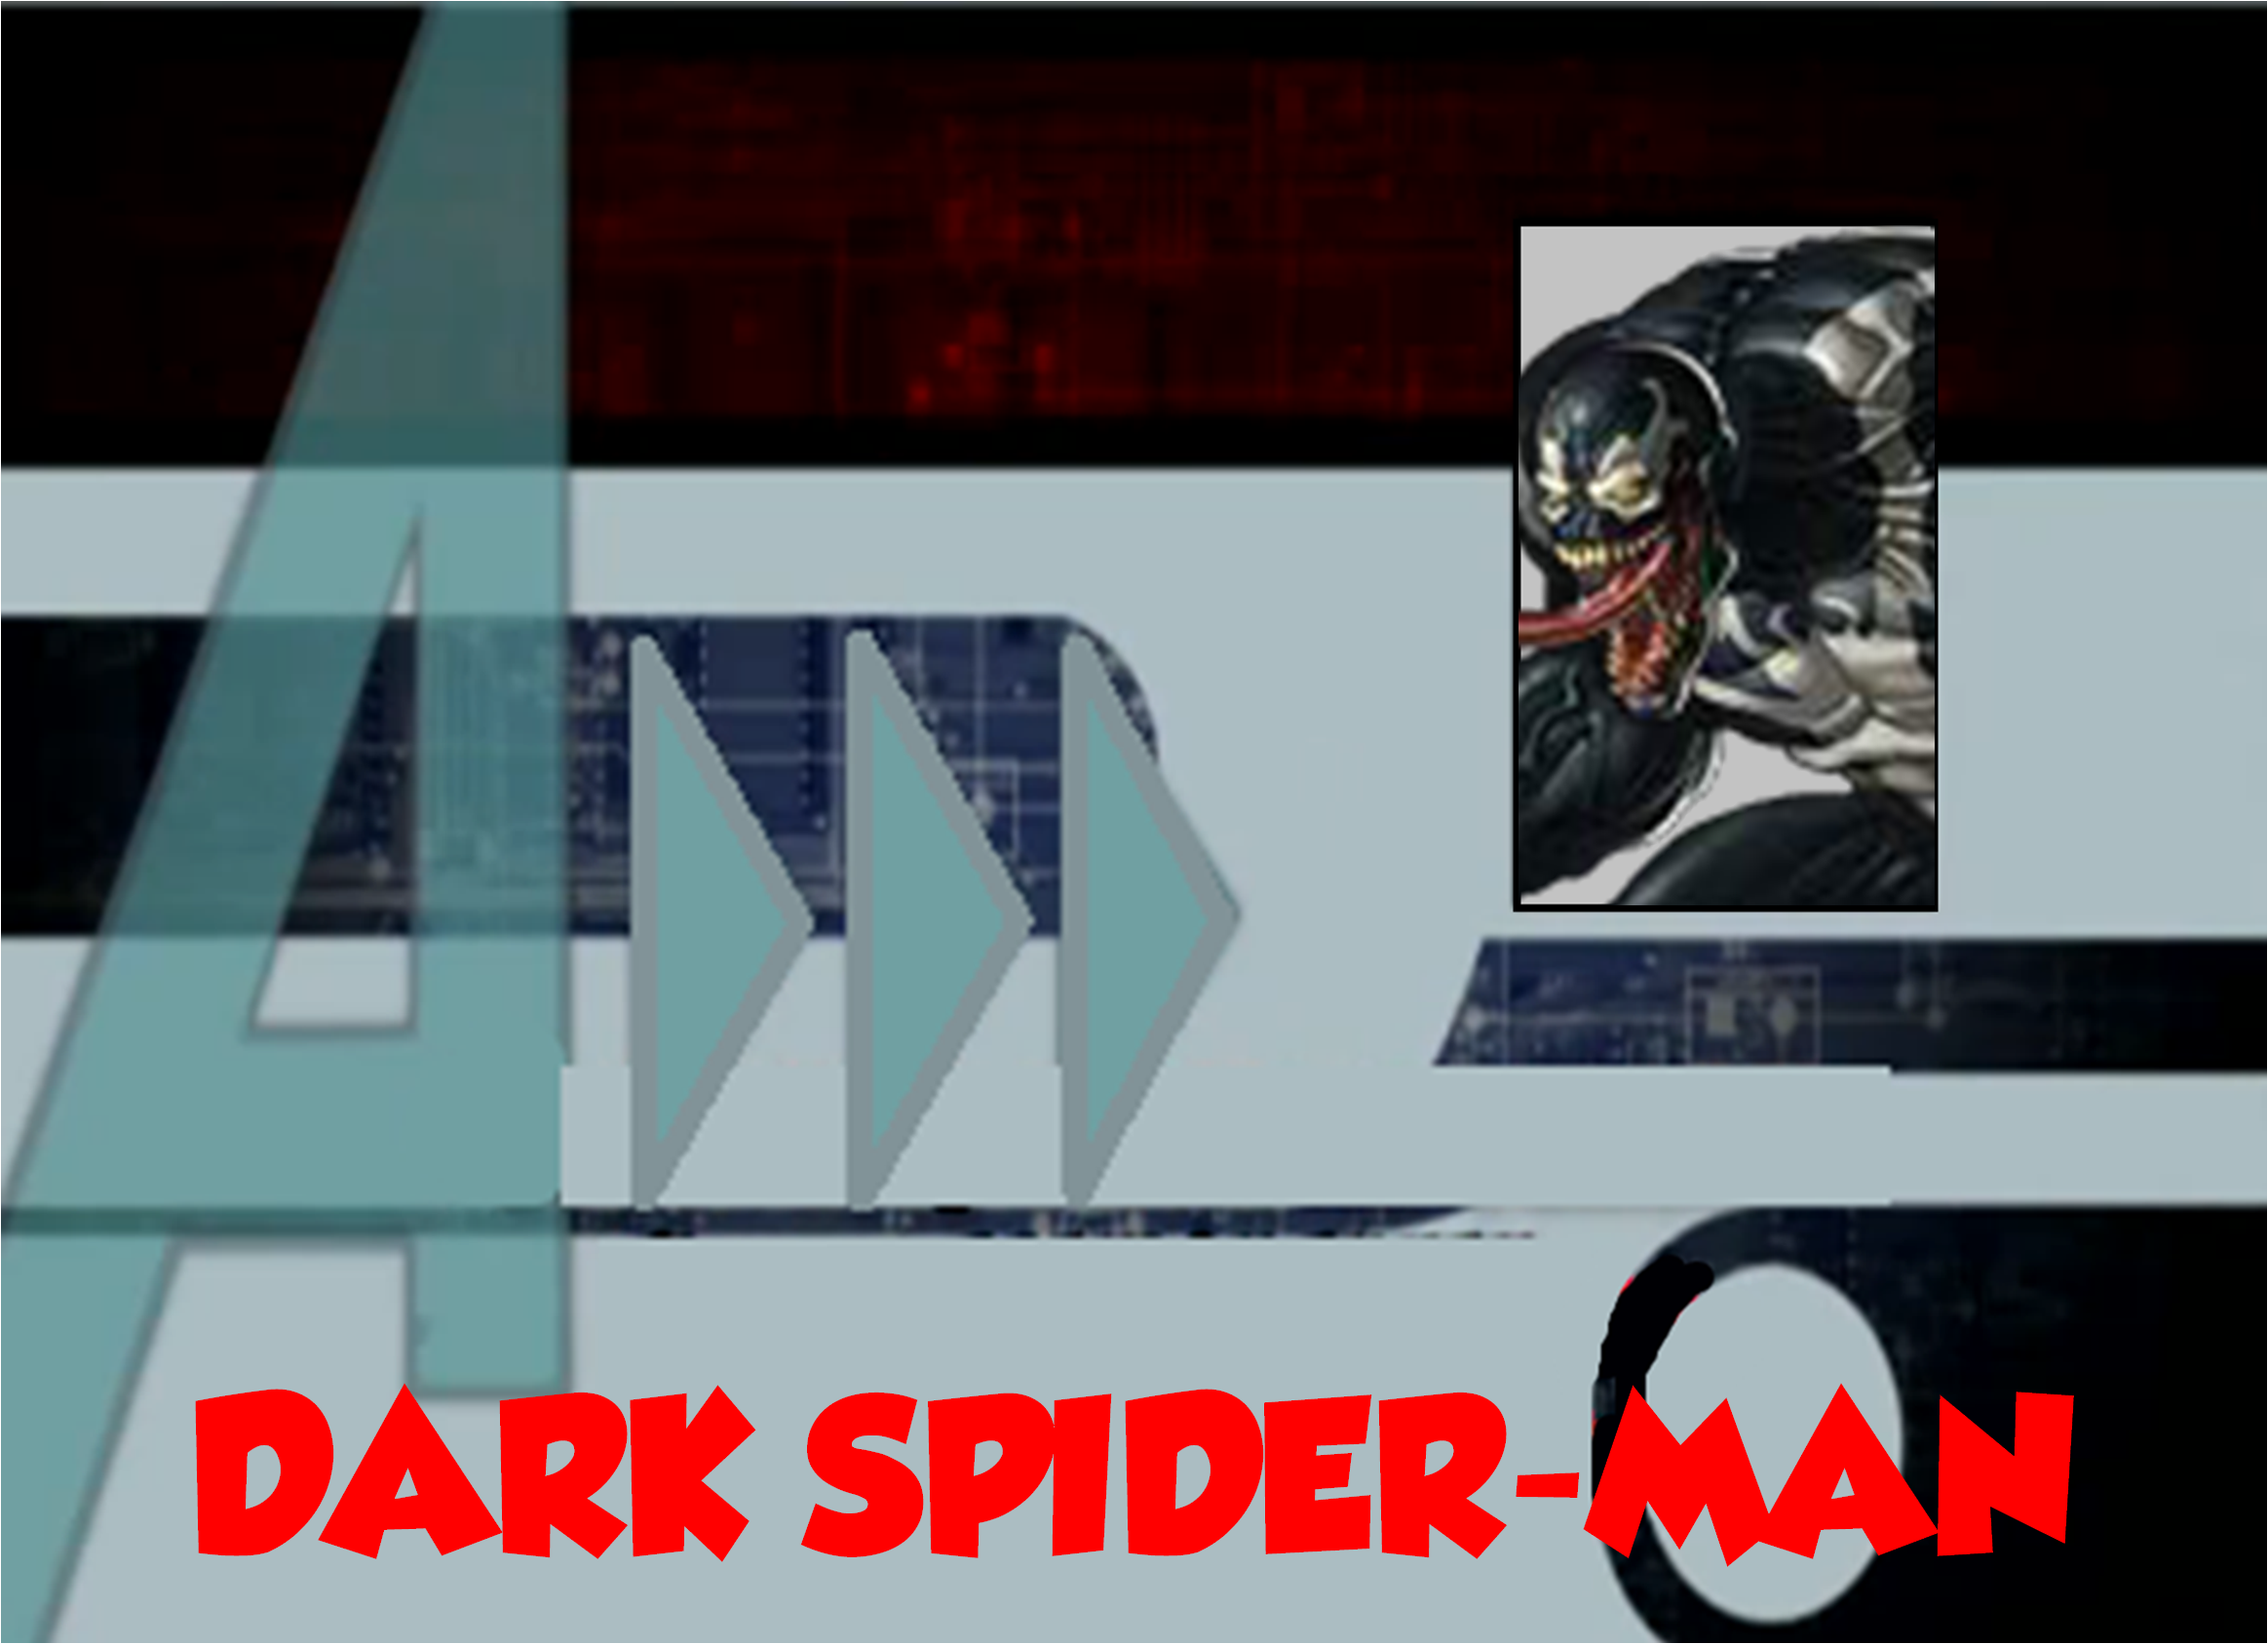 Dark Spider-Man (A!)